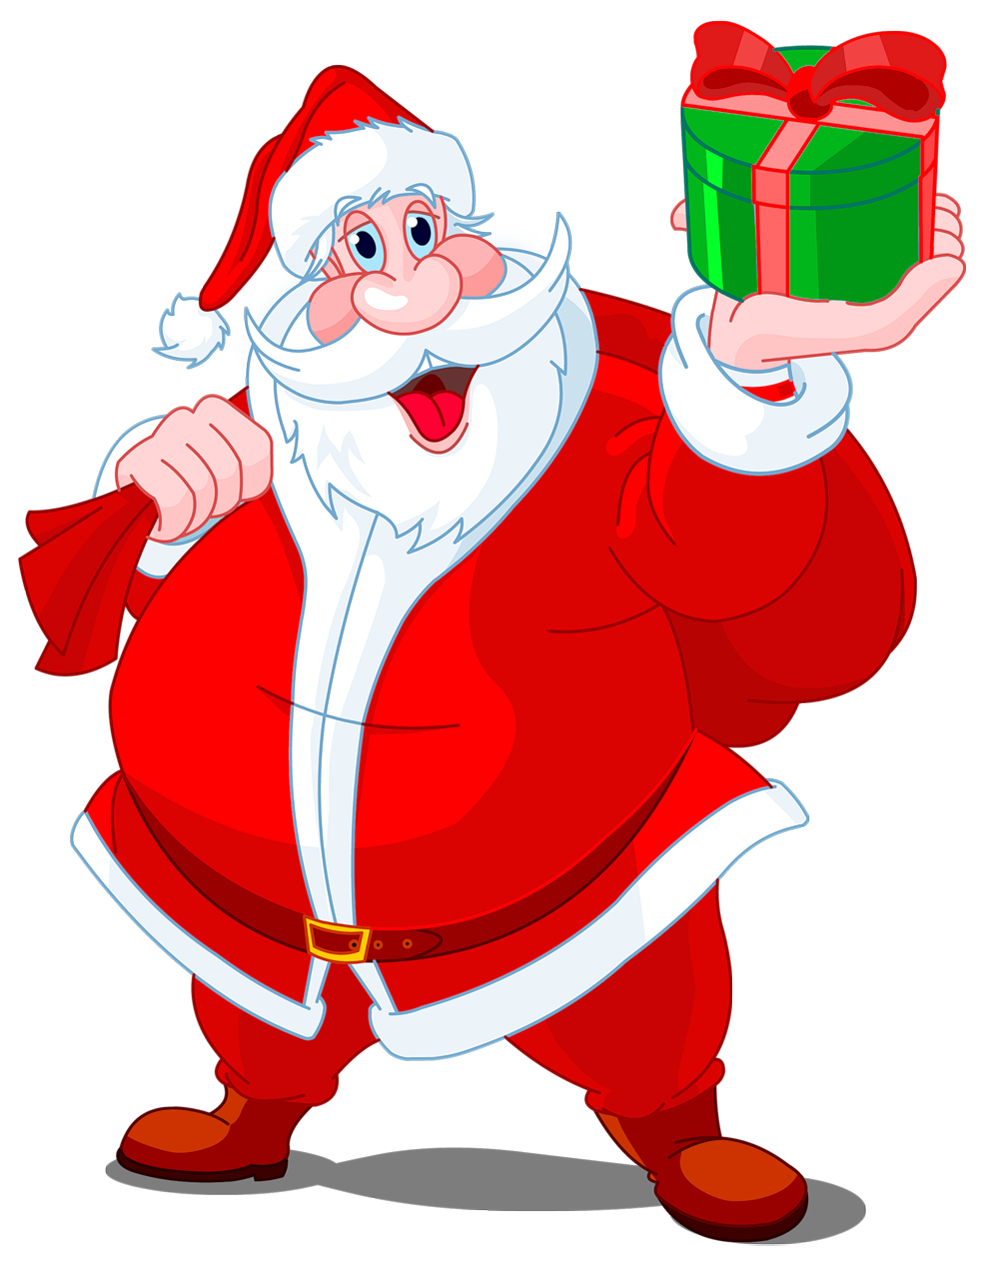 Claus clipart santa claus. Transparent with green gift